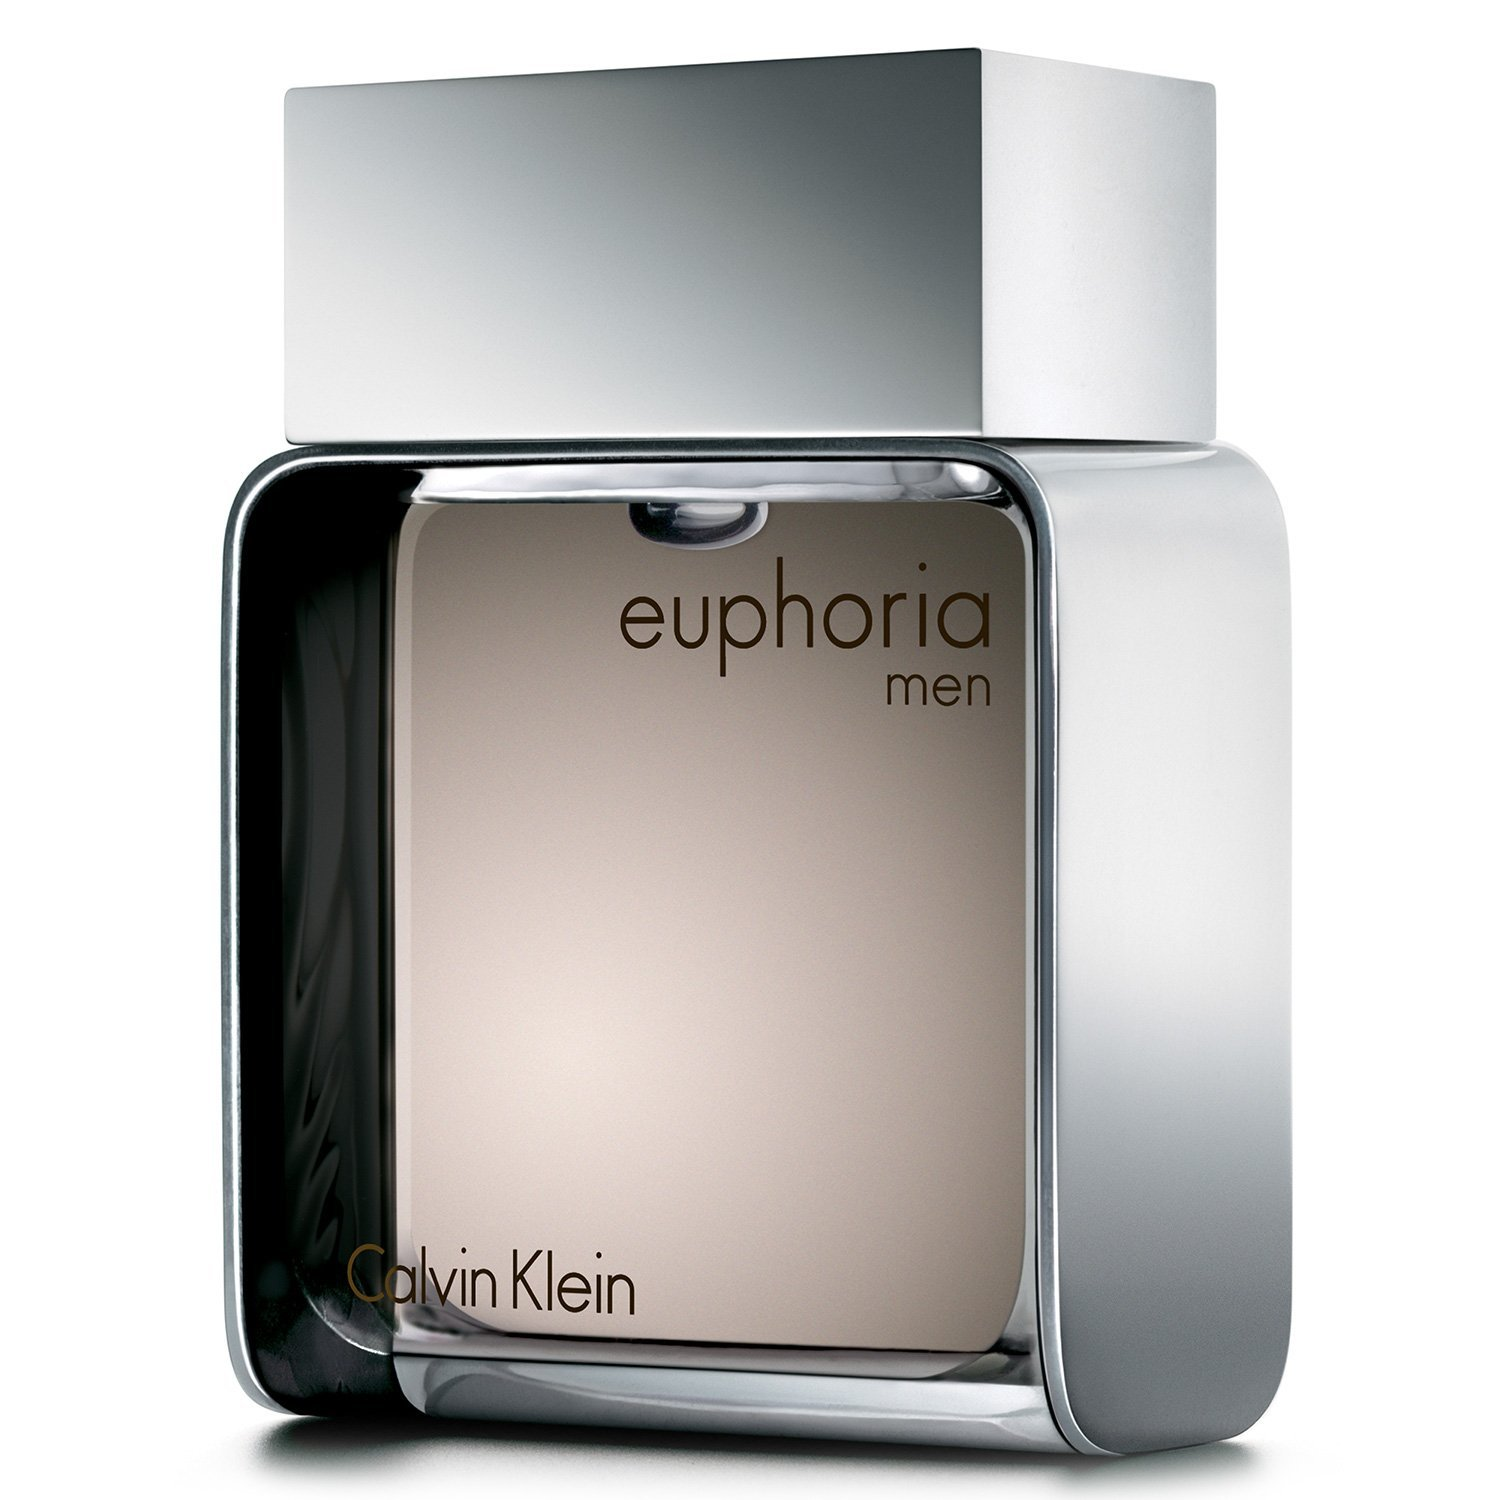 Primary image for Euphoria 1.0 oz. Spray for Men by Calvin Klein